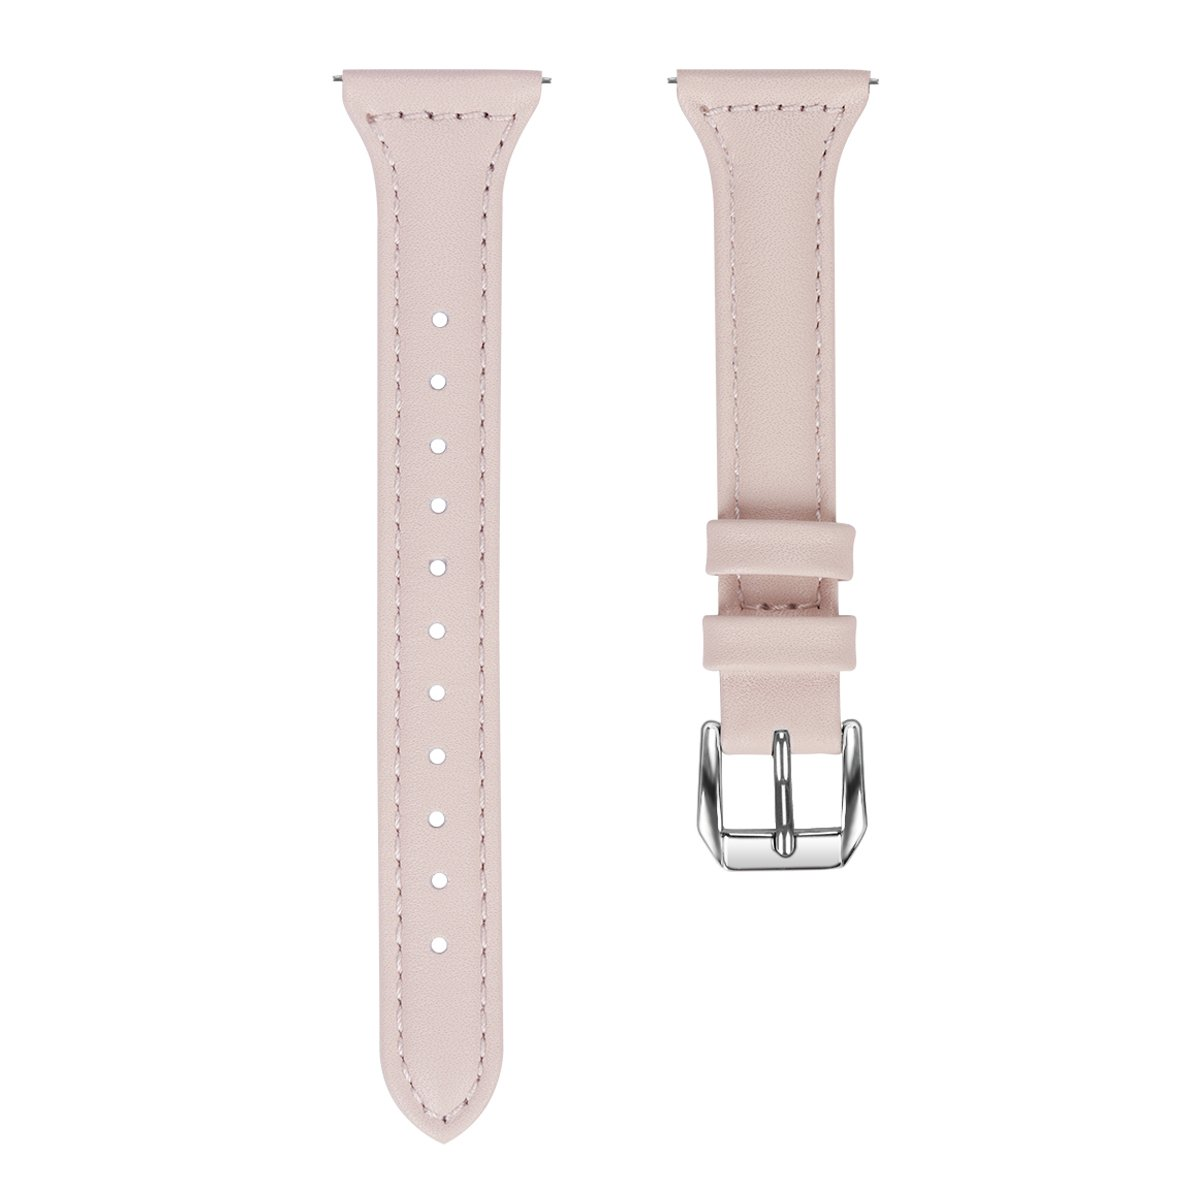 For Fitbit Versa Watch Genuine Cow Leather Pink Watch Band Watch Strap Pin Buckle Replacement Wristband